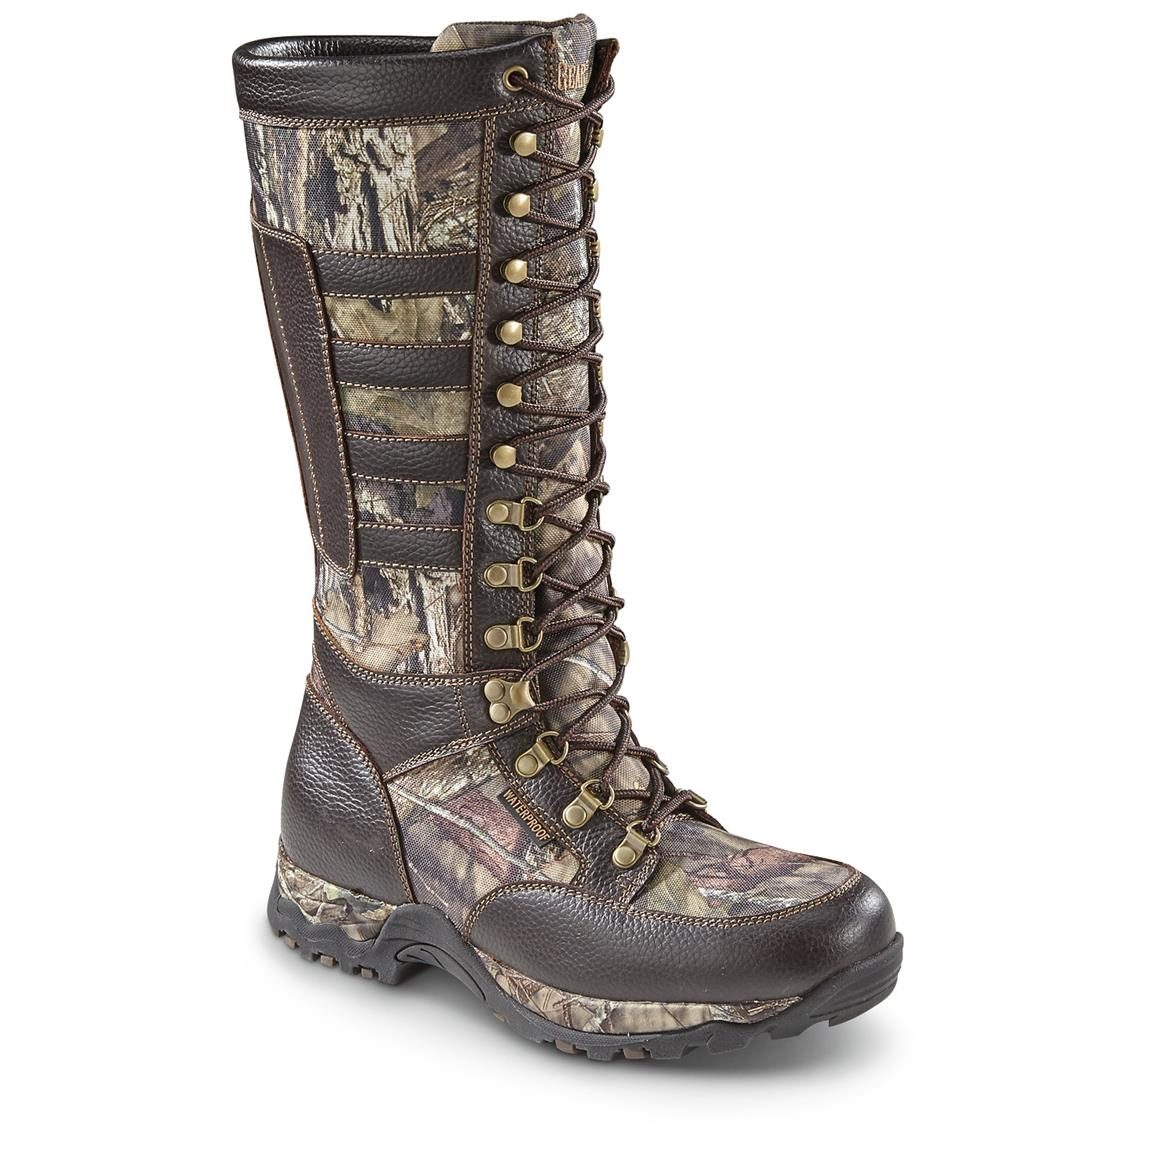 Guide Gear Men's Leather Snake Boots, Waterproof, Side Zip, Brown / Mossy Oak Break-Up Country, Brown/Mossy Oak Break-Up® COUNTRY™